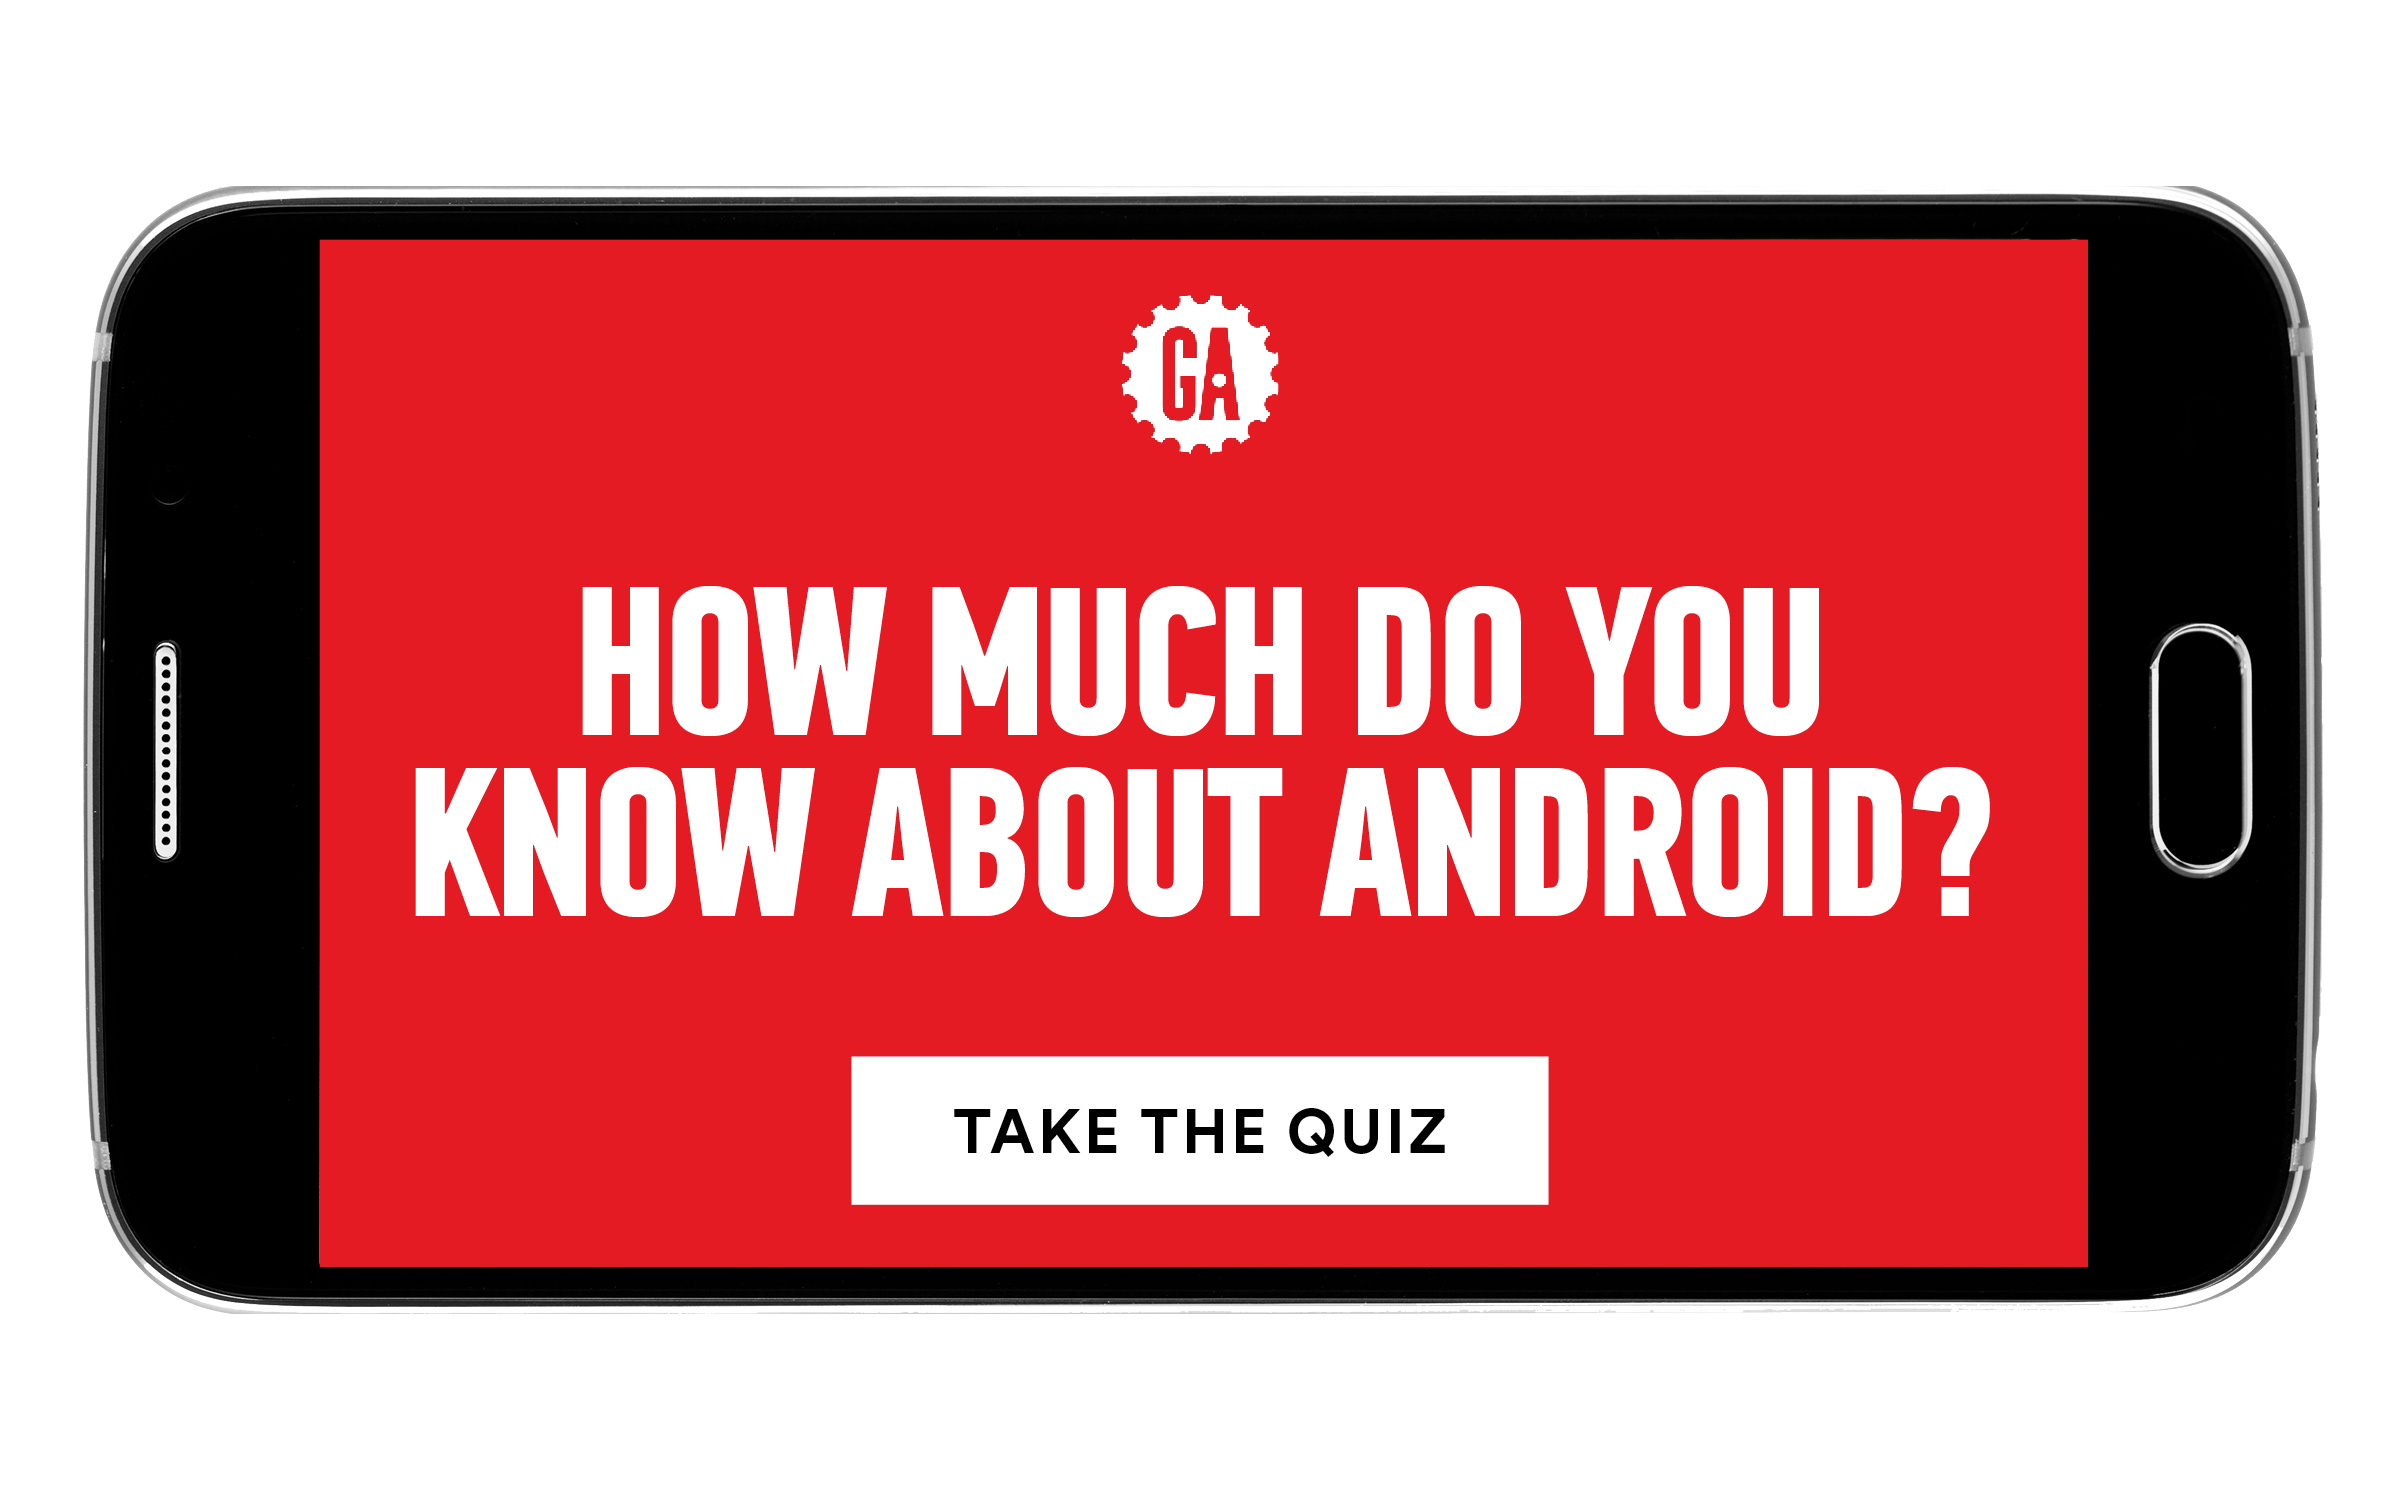 How much do you know about Android?